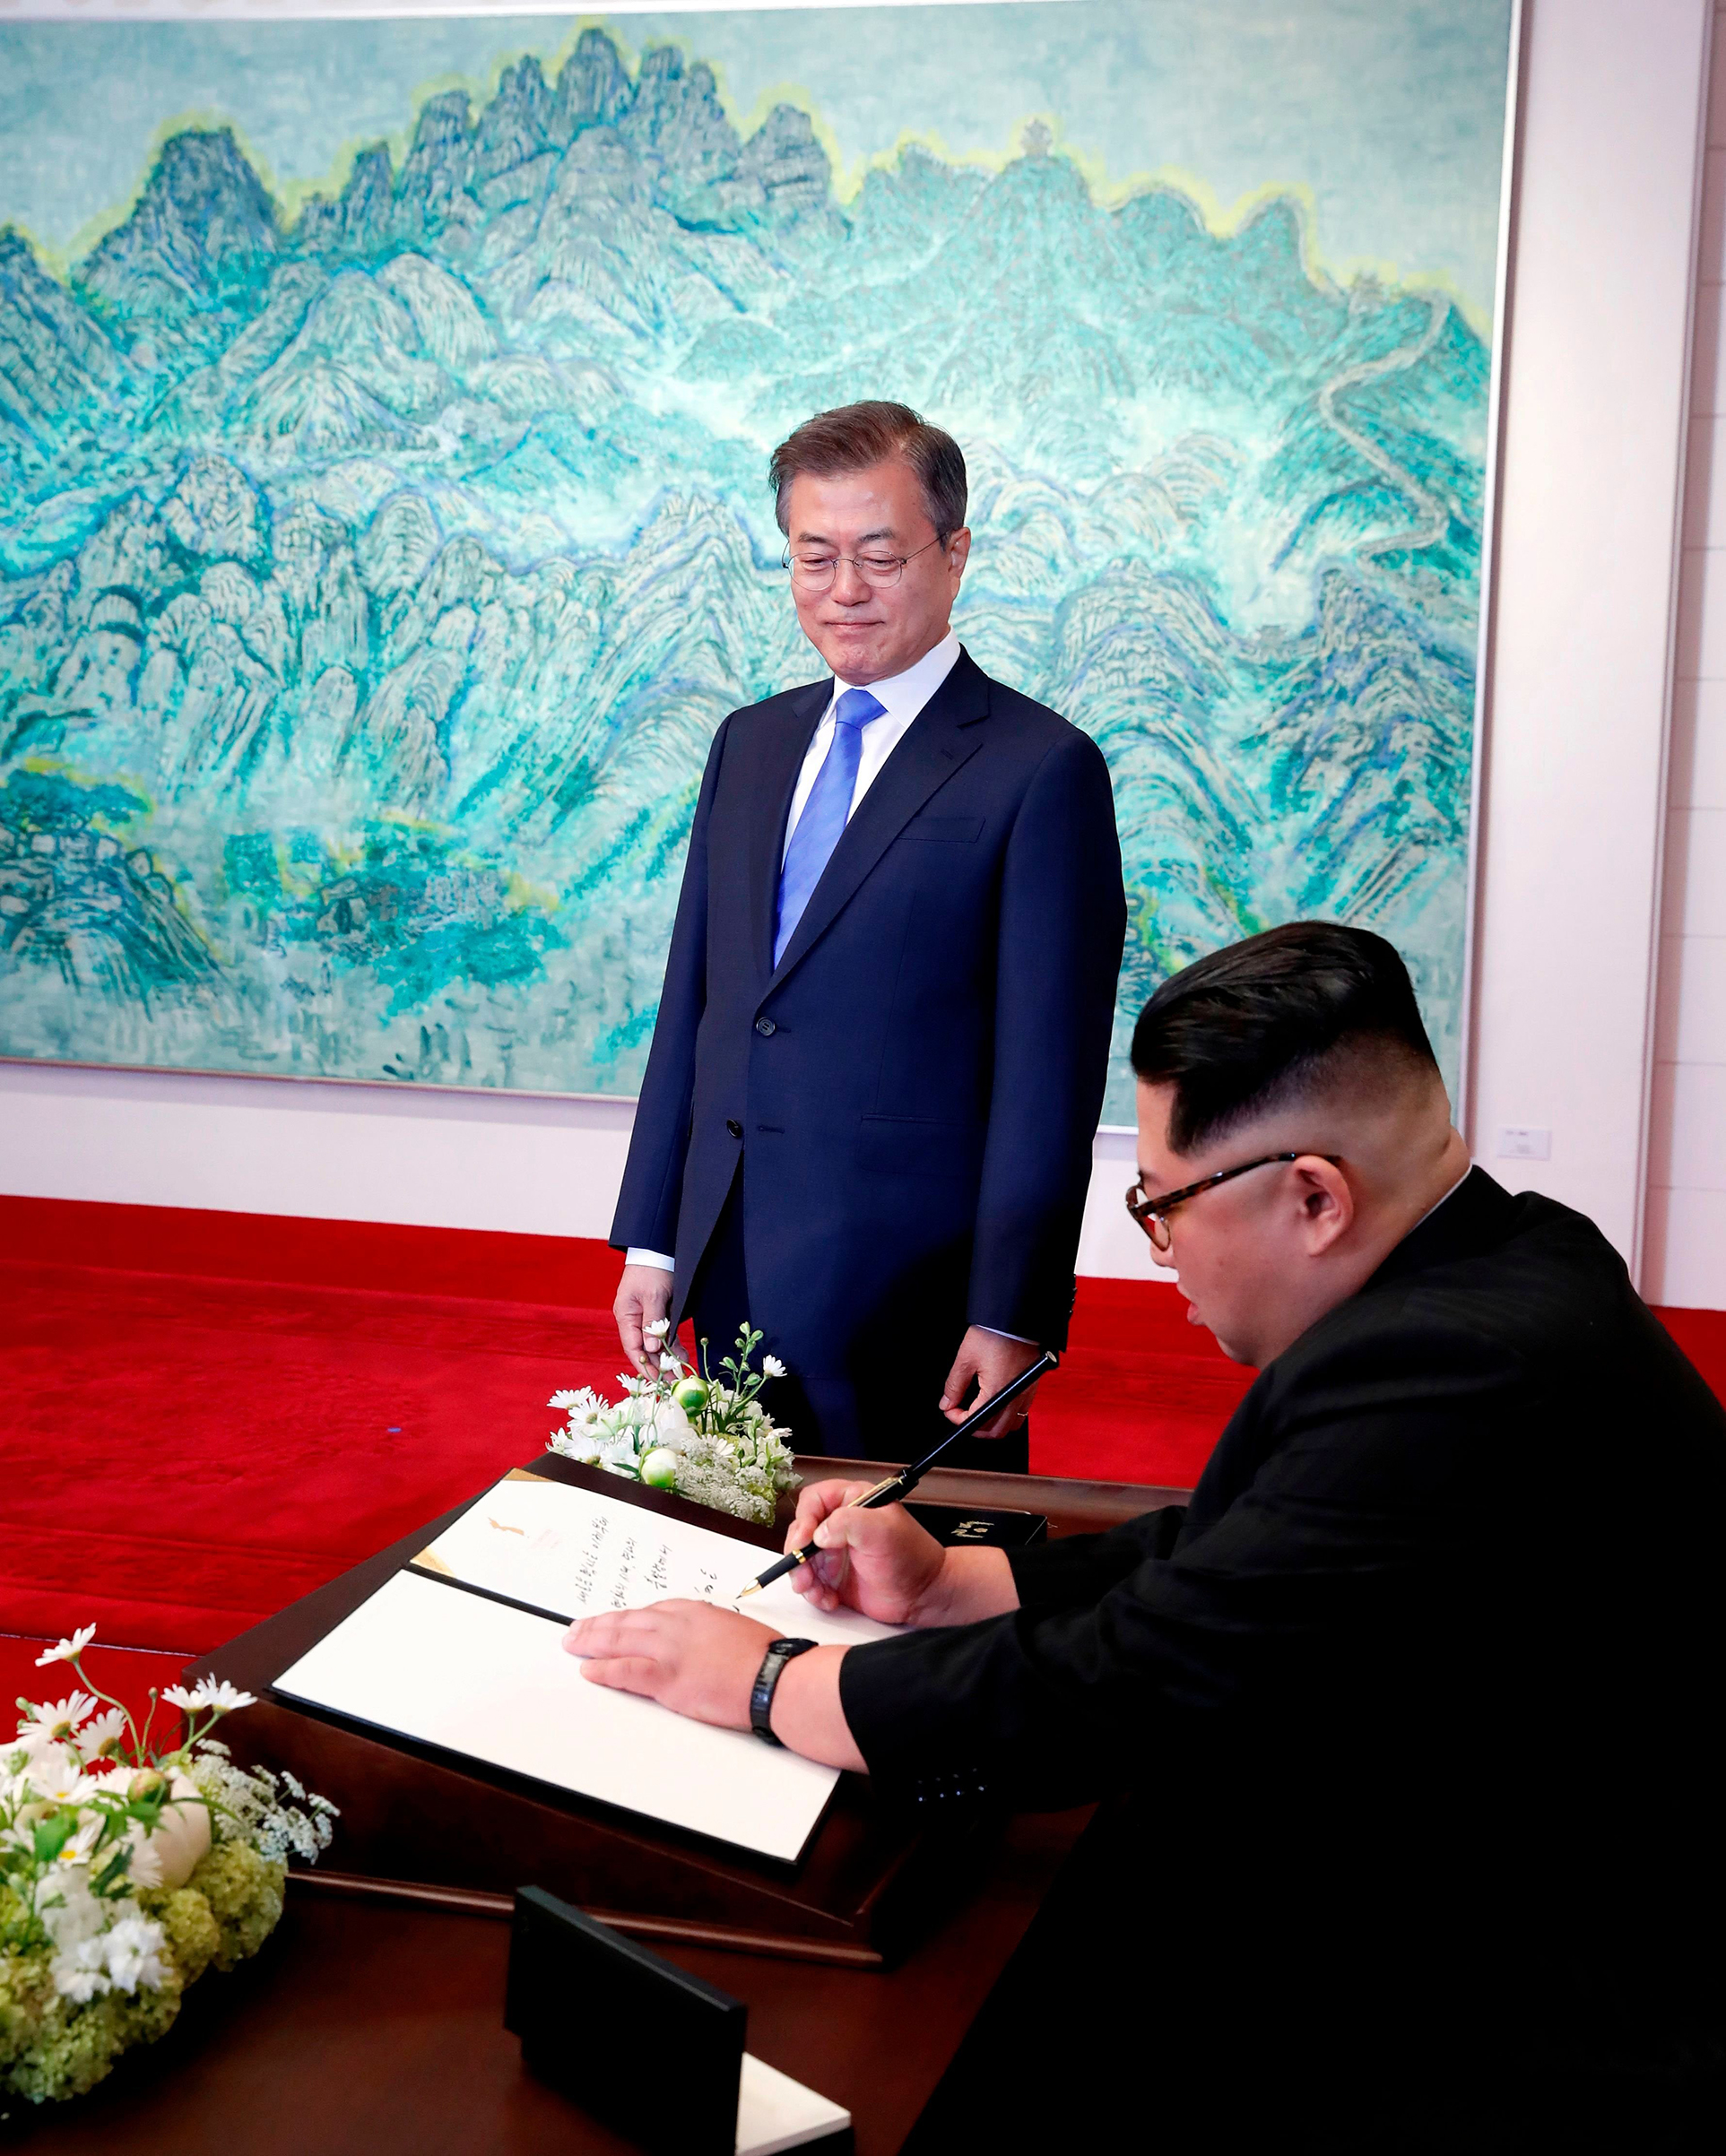 North Korean leader Kim Jong-Un (R) signs his name in the visitors' book before an inter-Korean summit with South Korean President Moon Jae-In at the Peace House at the south side of the truce village of Panmunjom in the demilitarized zone